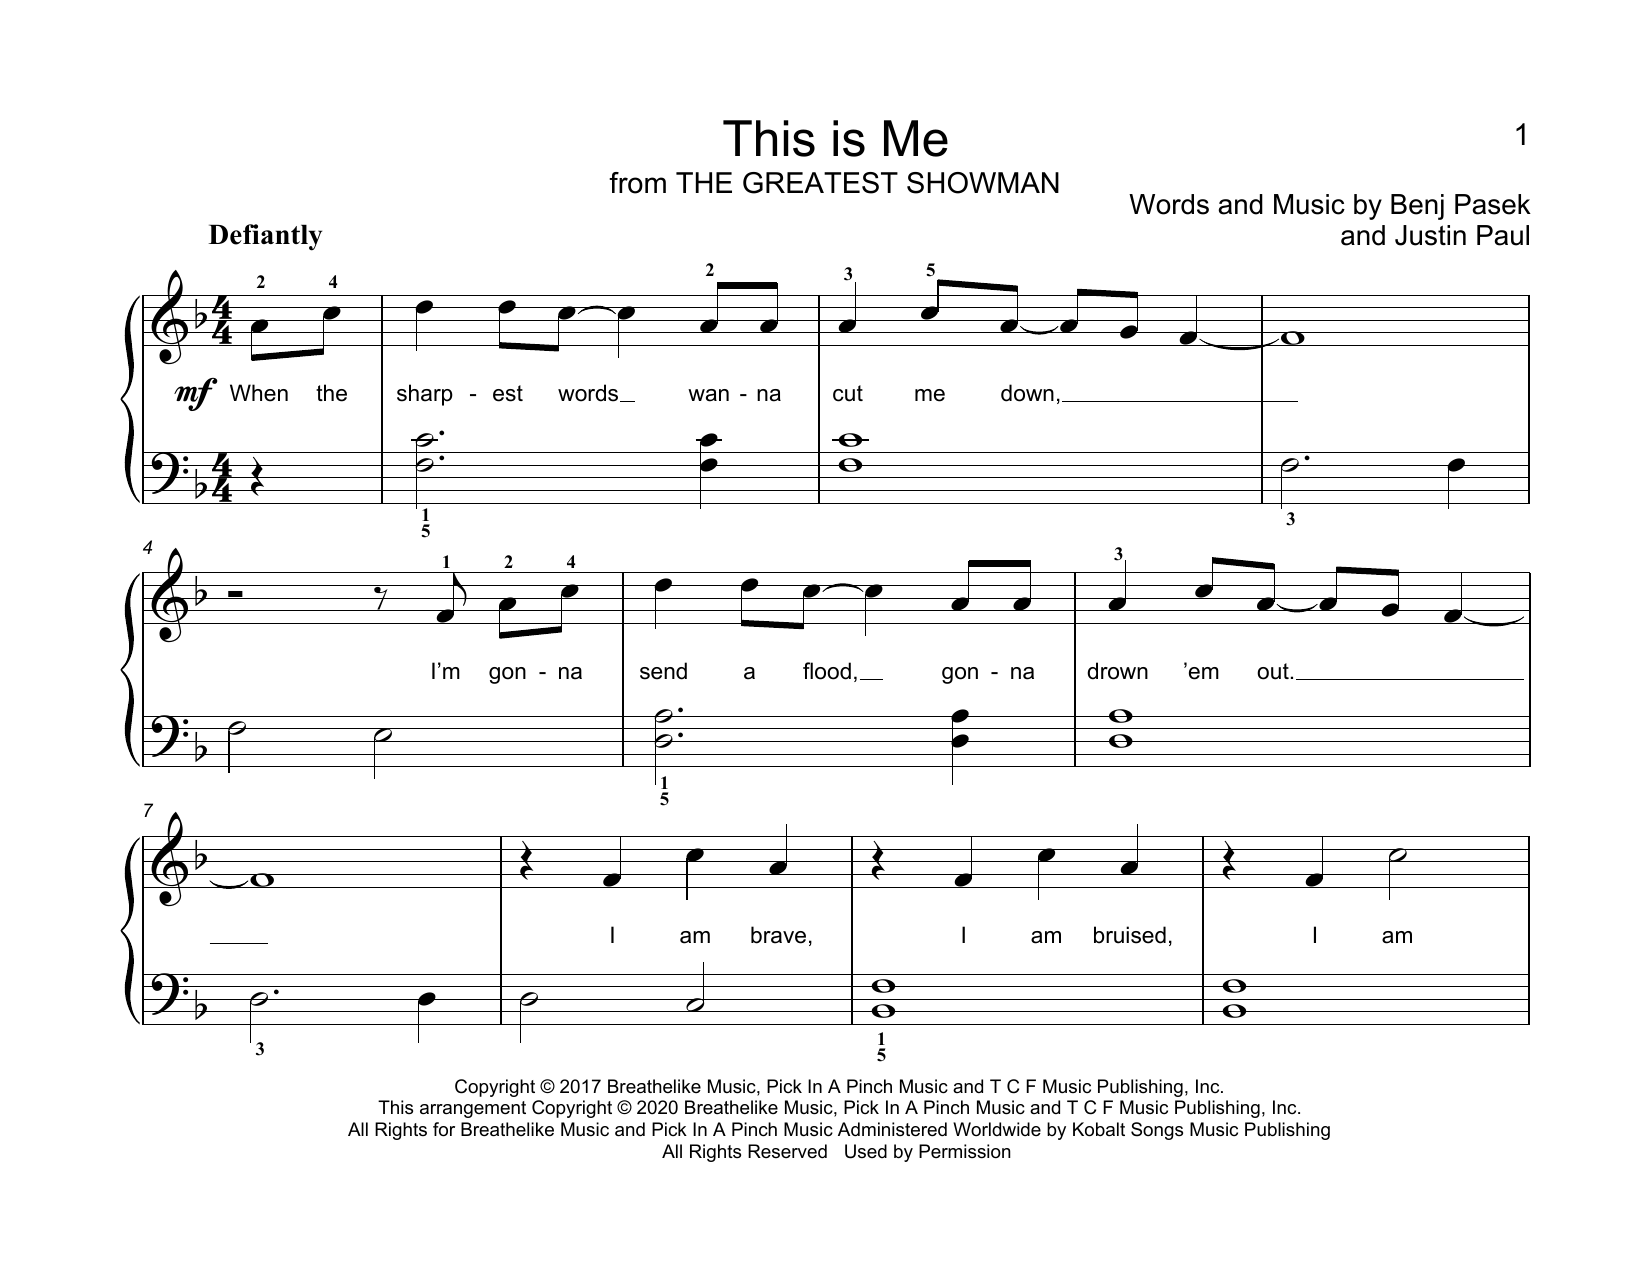 Pasek & Paul This Is Me (from The Greatest Showman) (arr. Christopher Hussey) sheet music notes printable PDF score